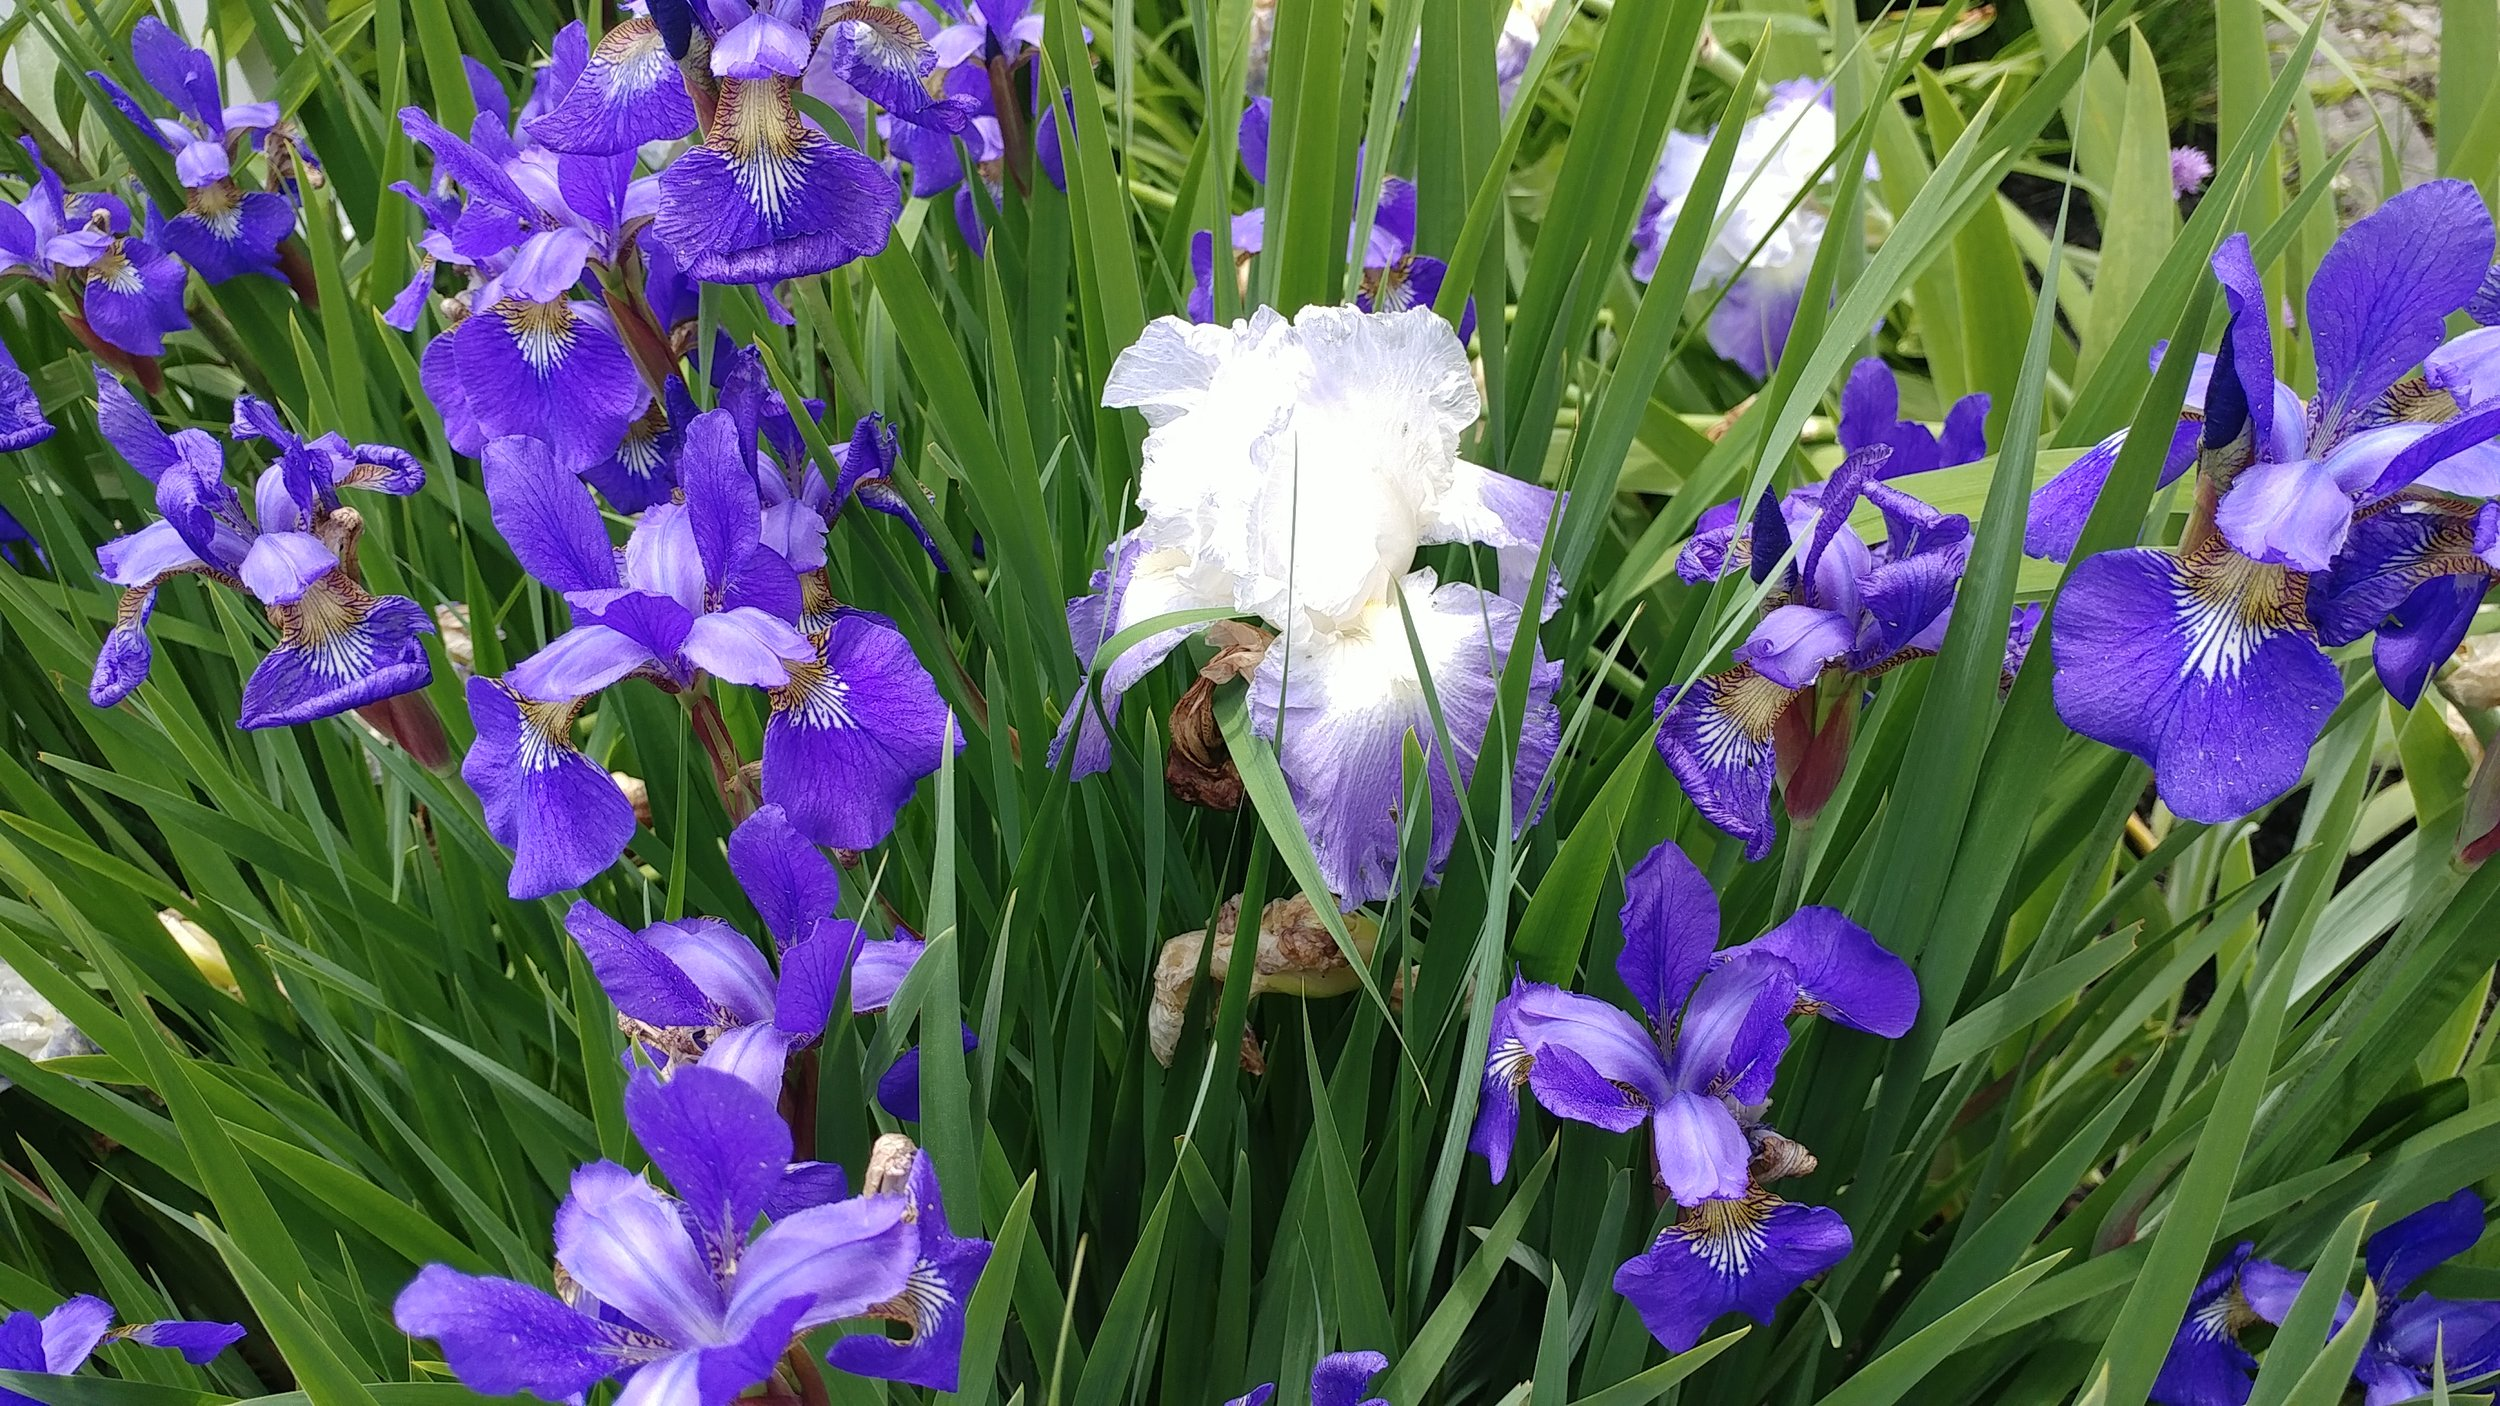 Beautiful purple irises with one stand-out white one in the crowd, all found in the gardens surrounding the Granite Inn in Rockland, ME. Inns Along the Coast photo.